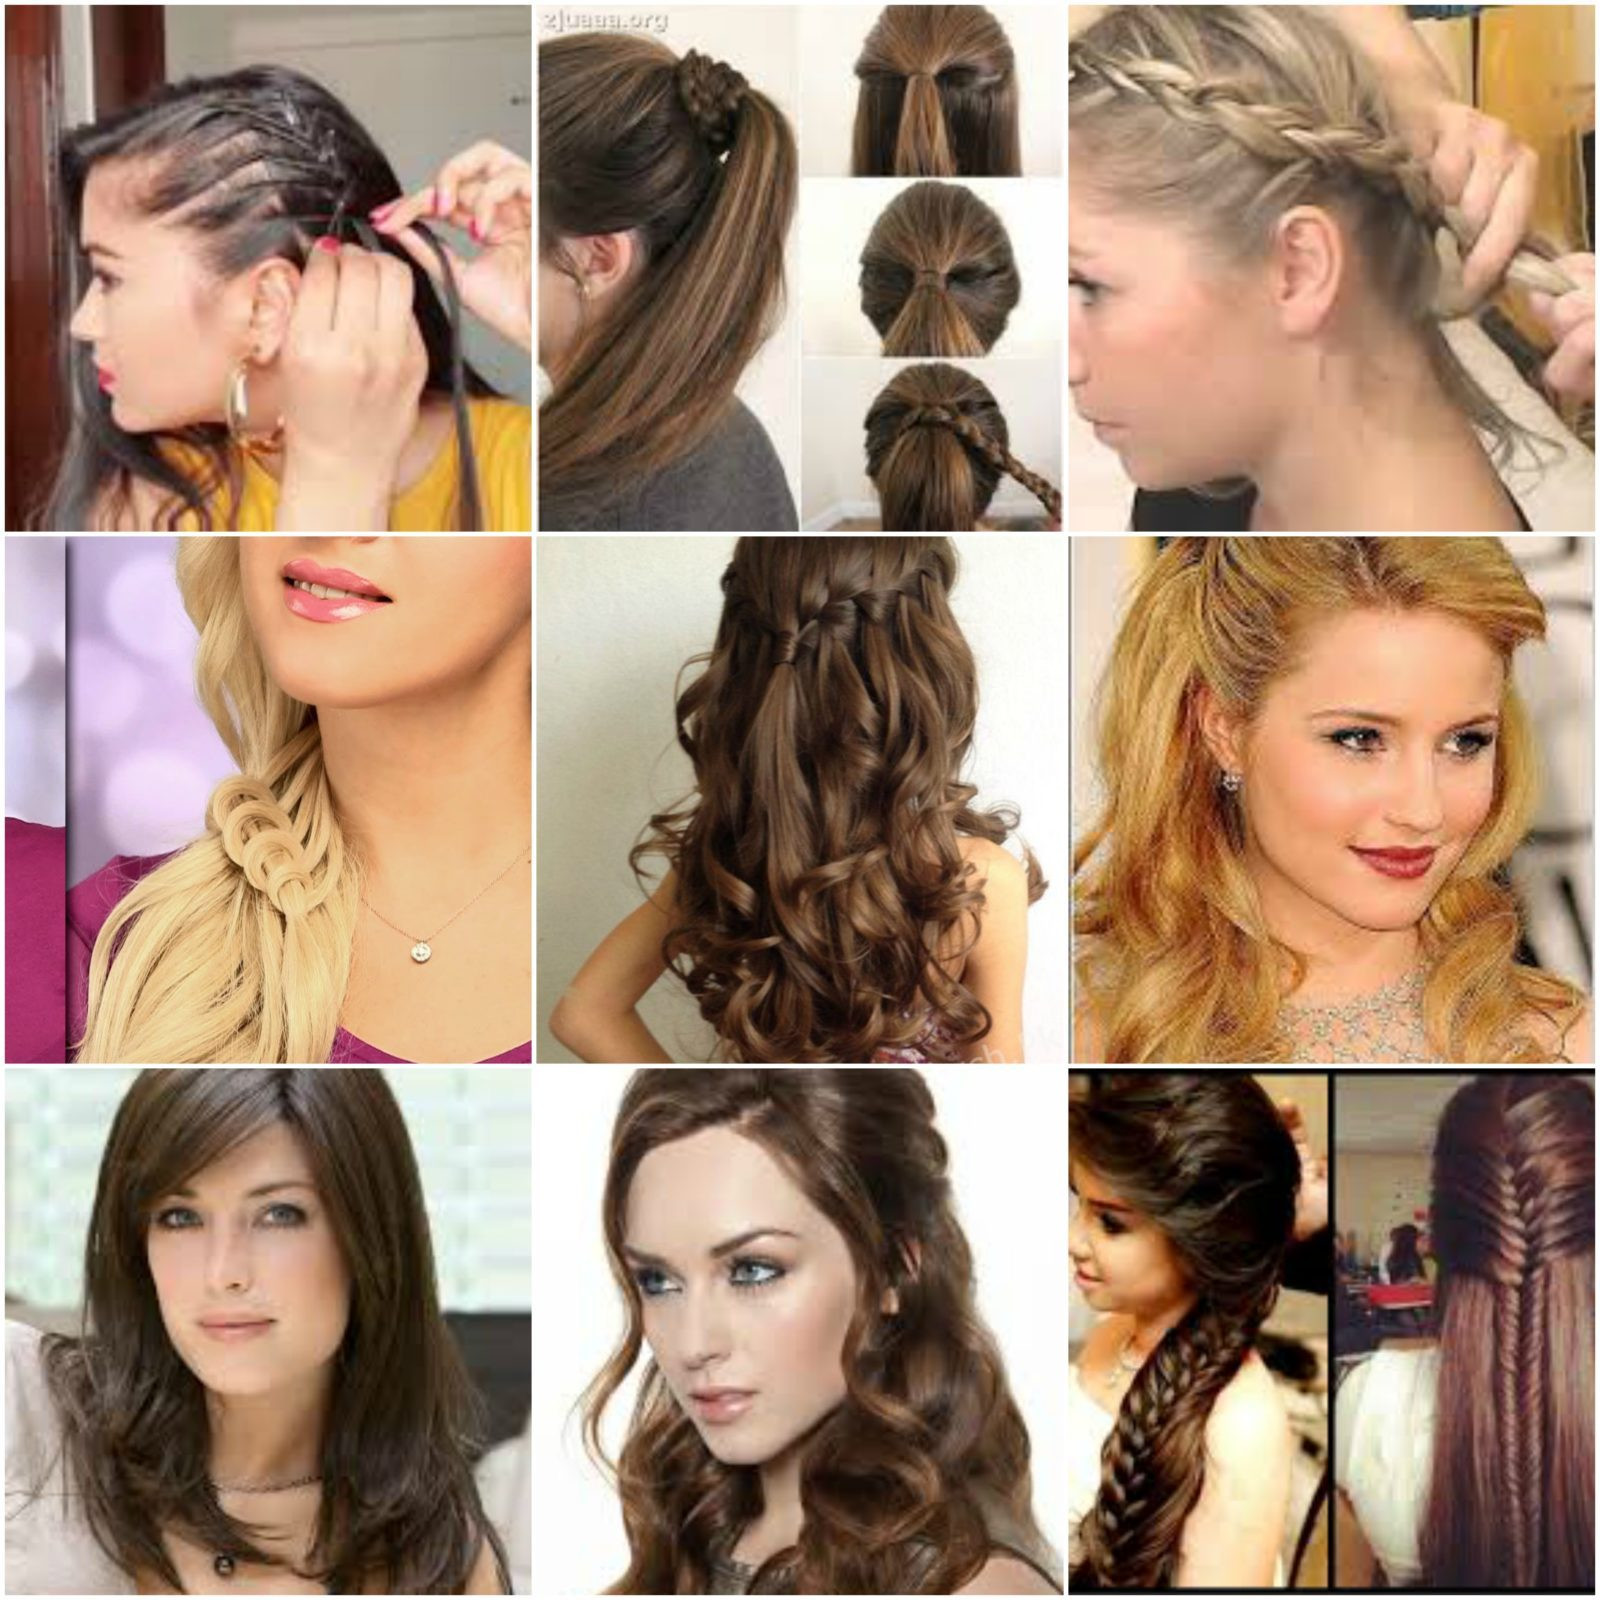 Best ideas about Easy Hairstyles For Party . Save or Pin 100 Easy hairstyles for medium hair for party in 2019 Now.